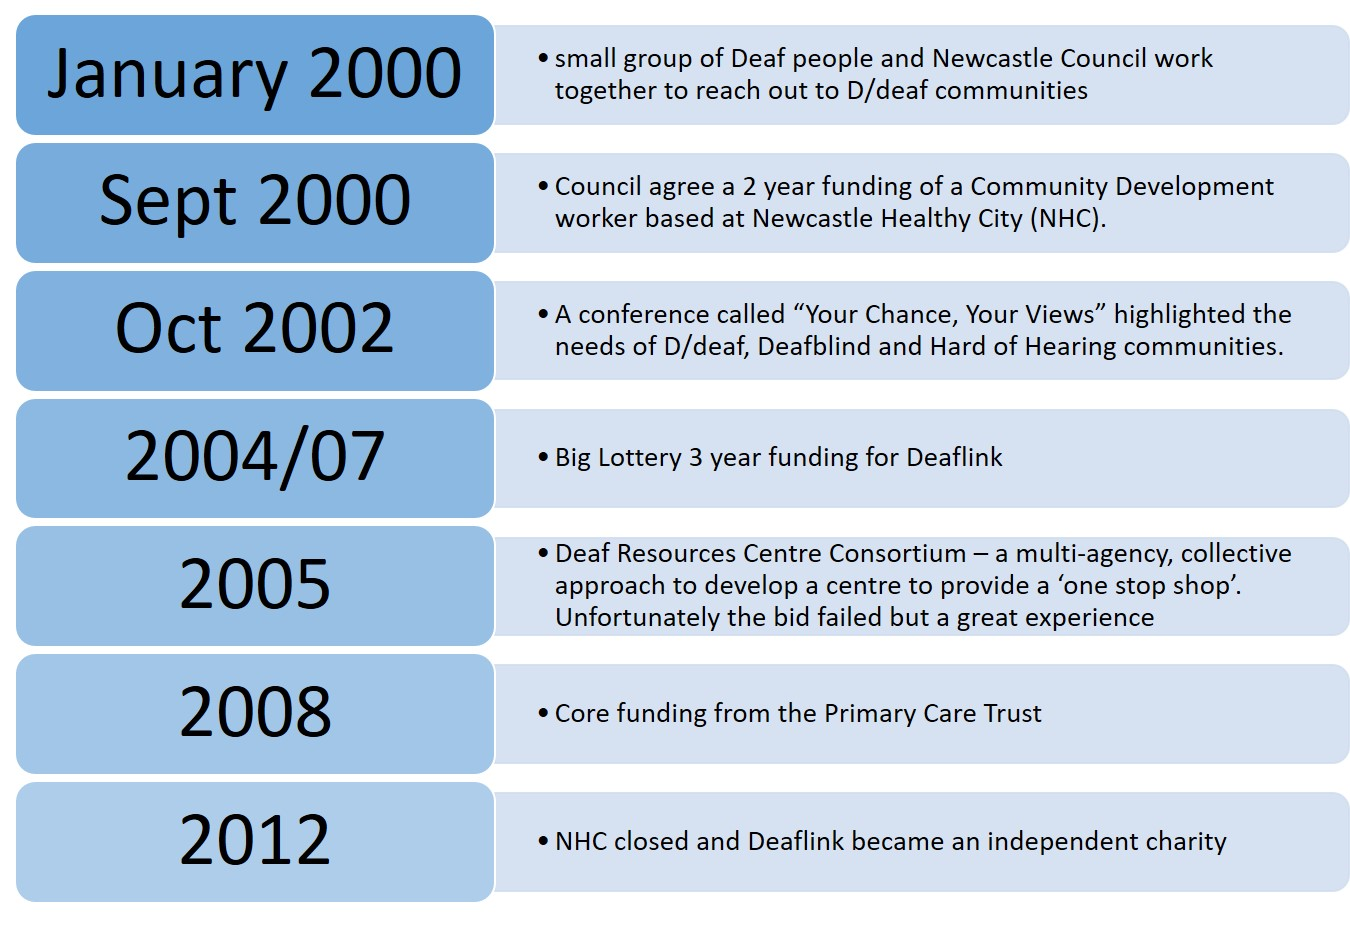 Chart showing the history of events at deaflink